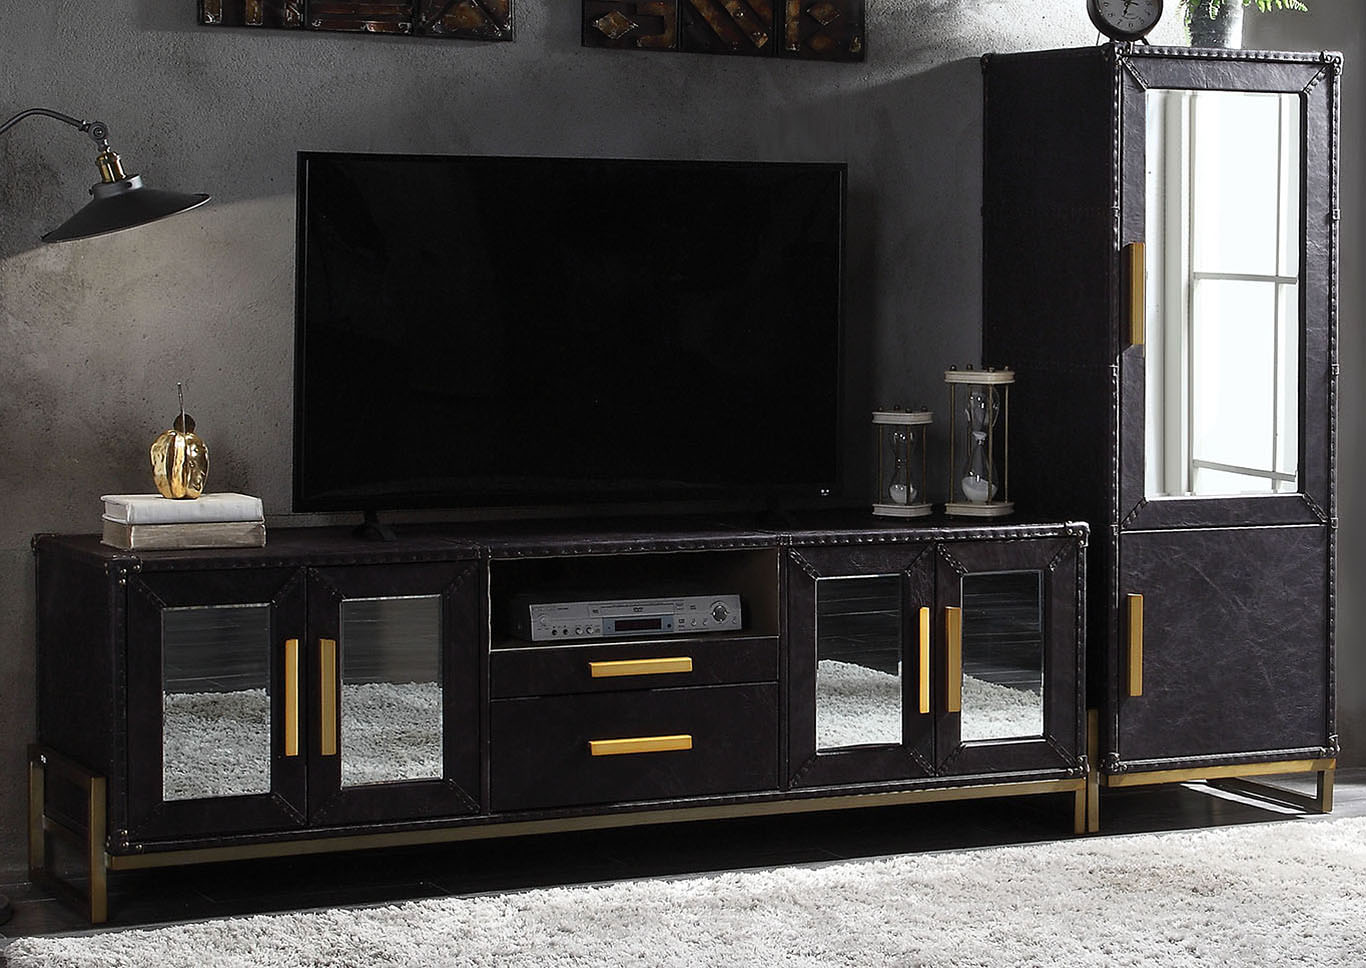 Keegan Antique Ebony Leather TV Stand,Acme